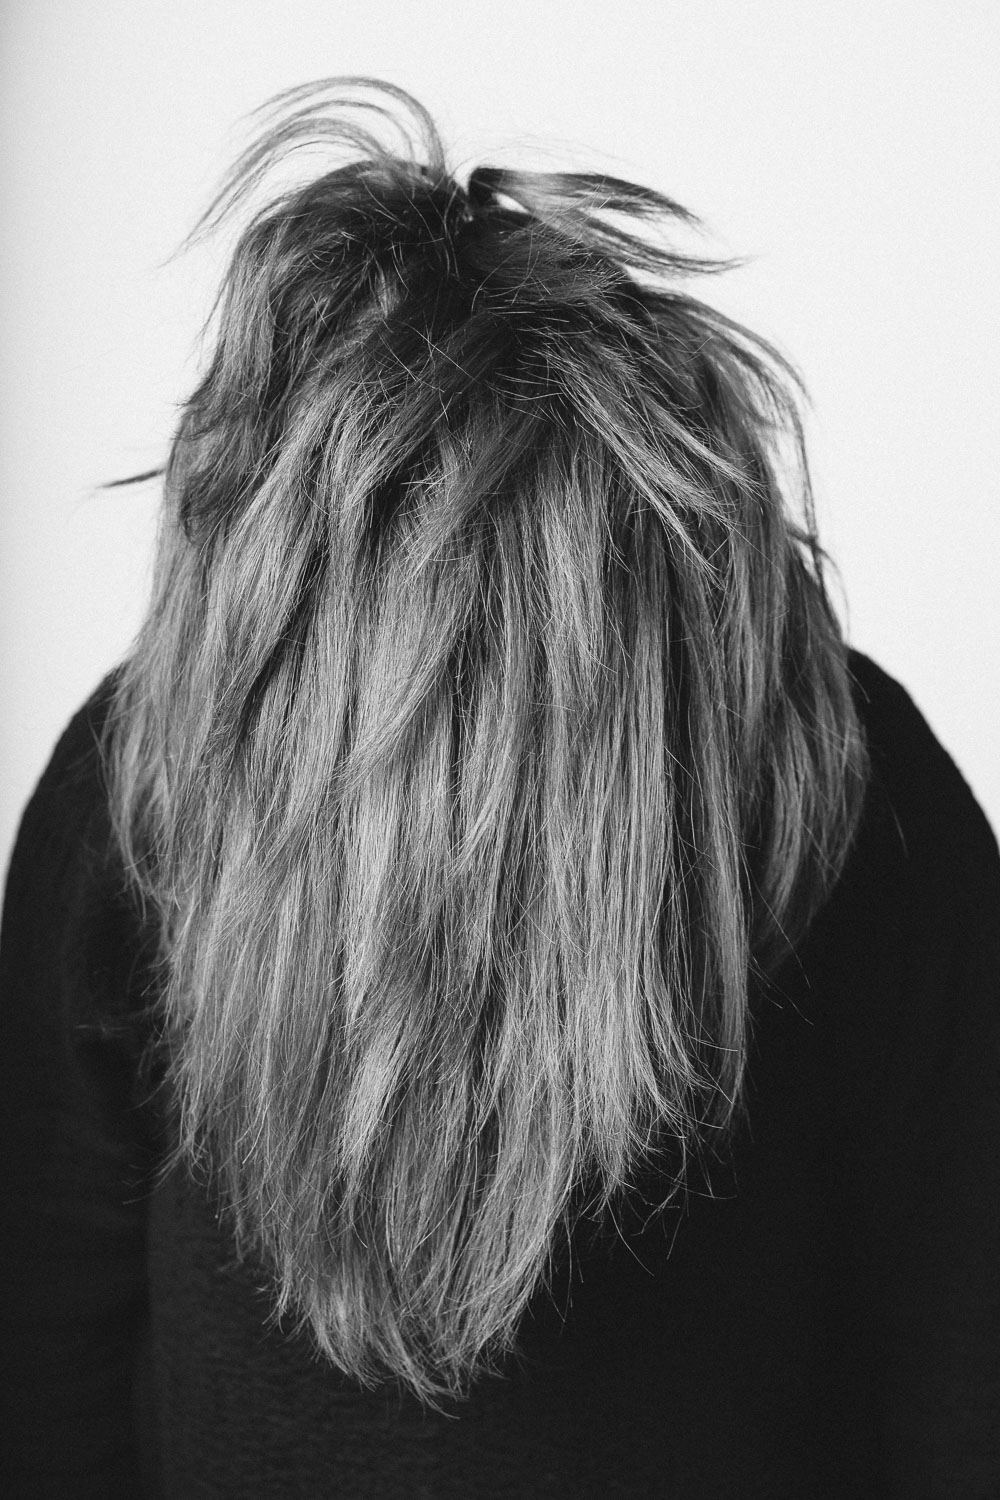 Hair of Cat. nataliehillphotography.com